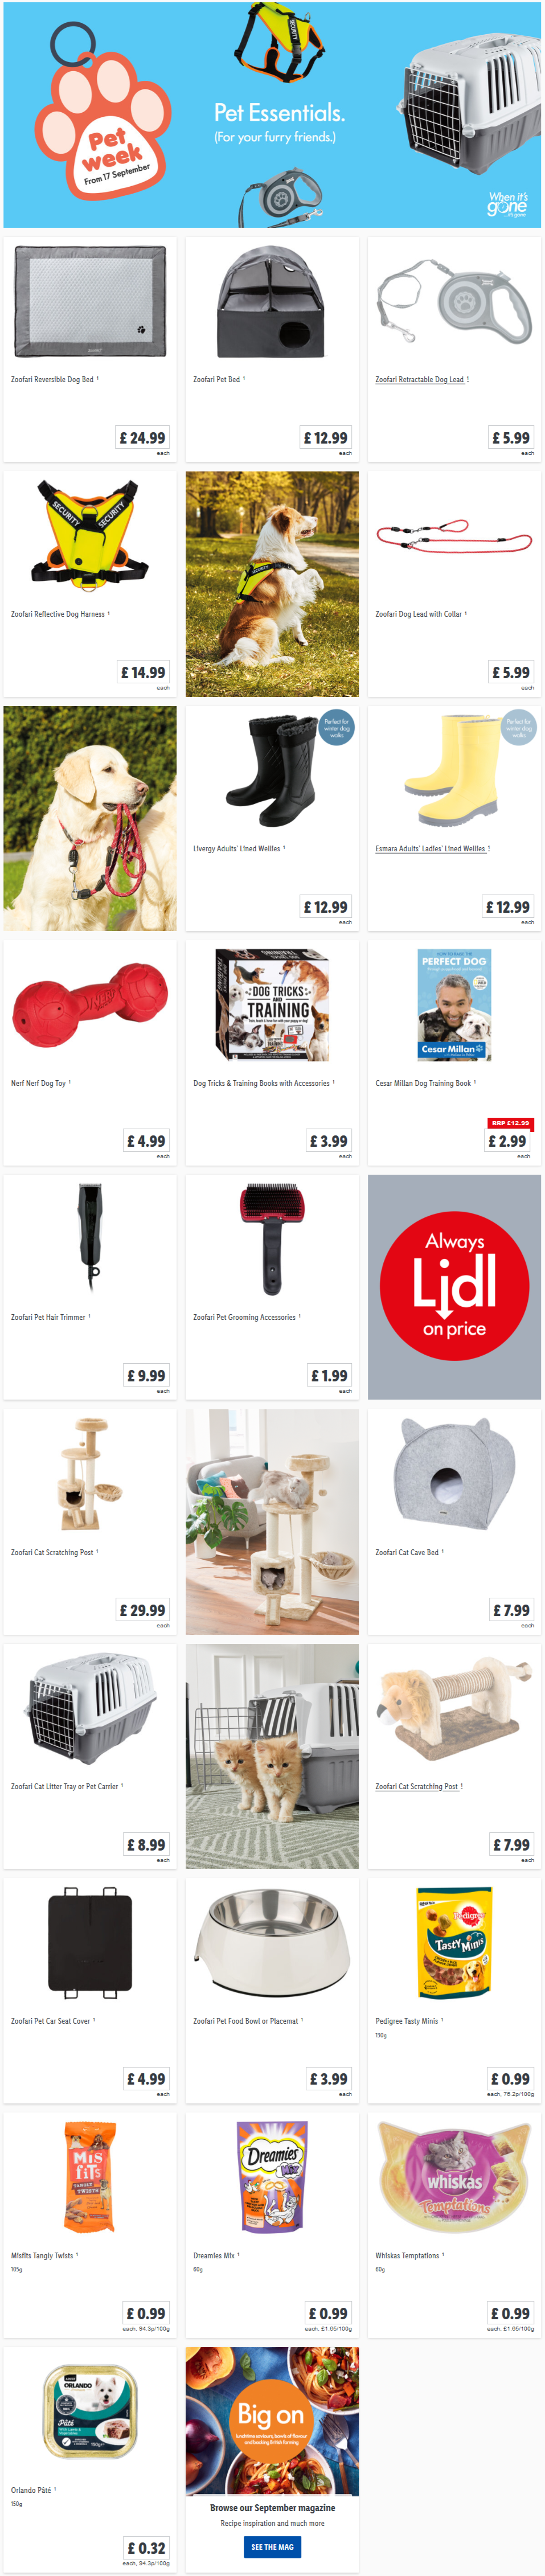 LIDL Offers this Thursday Pet Essentials From Thursday 17th September 2020